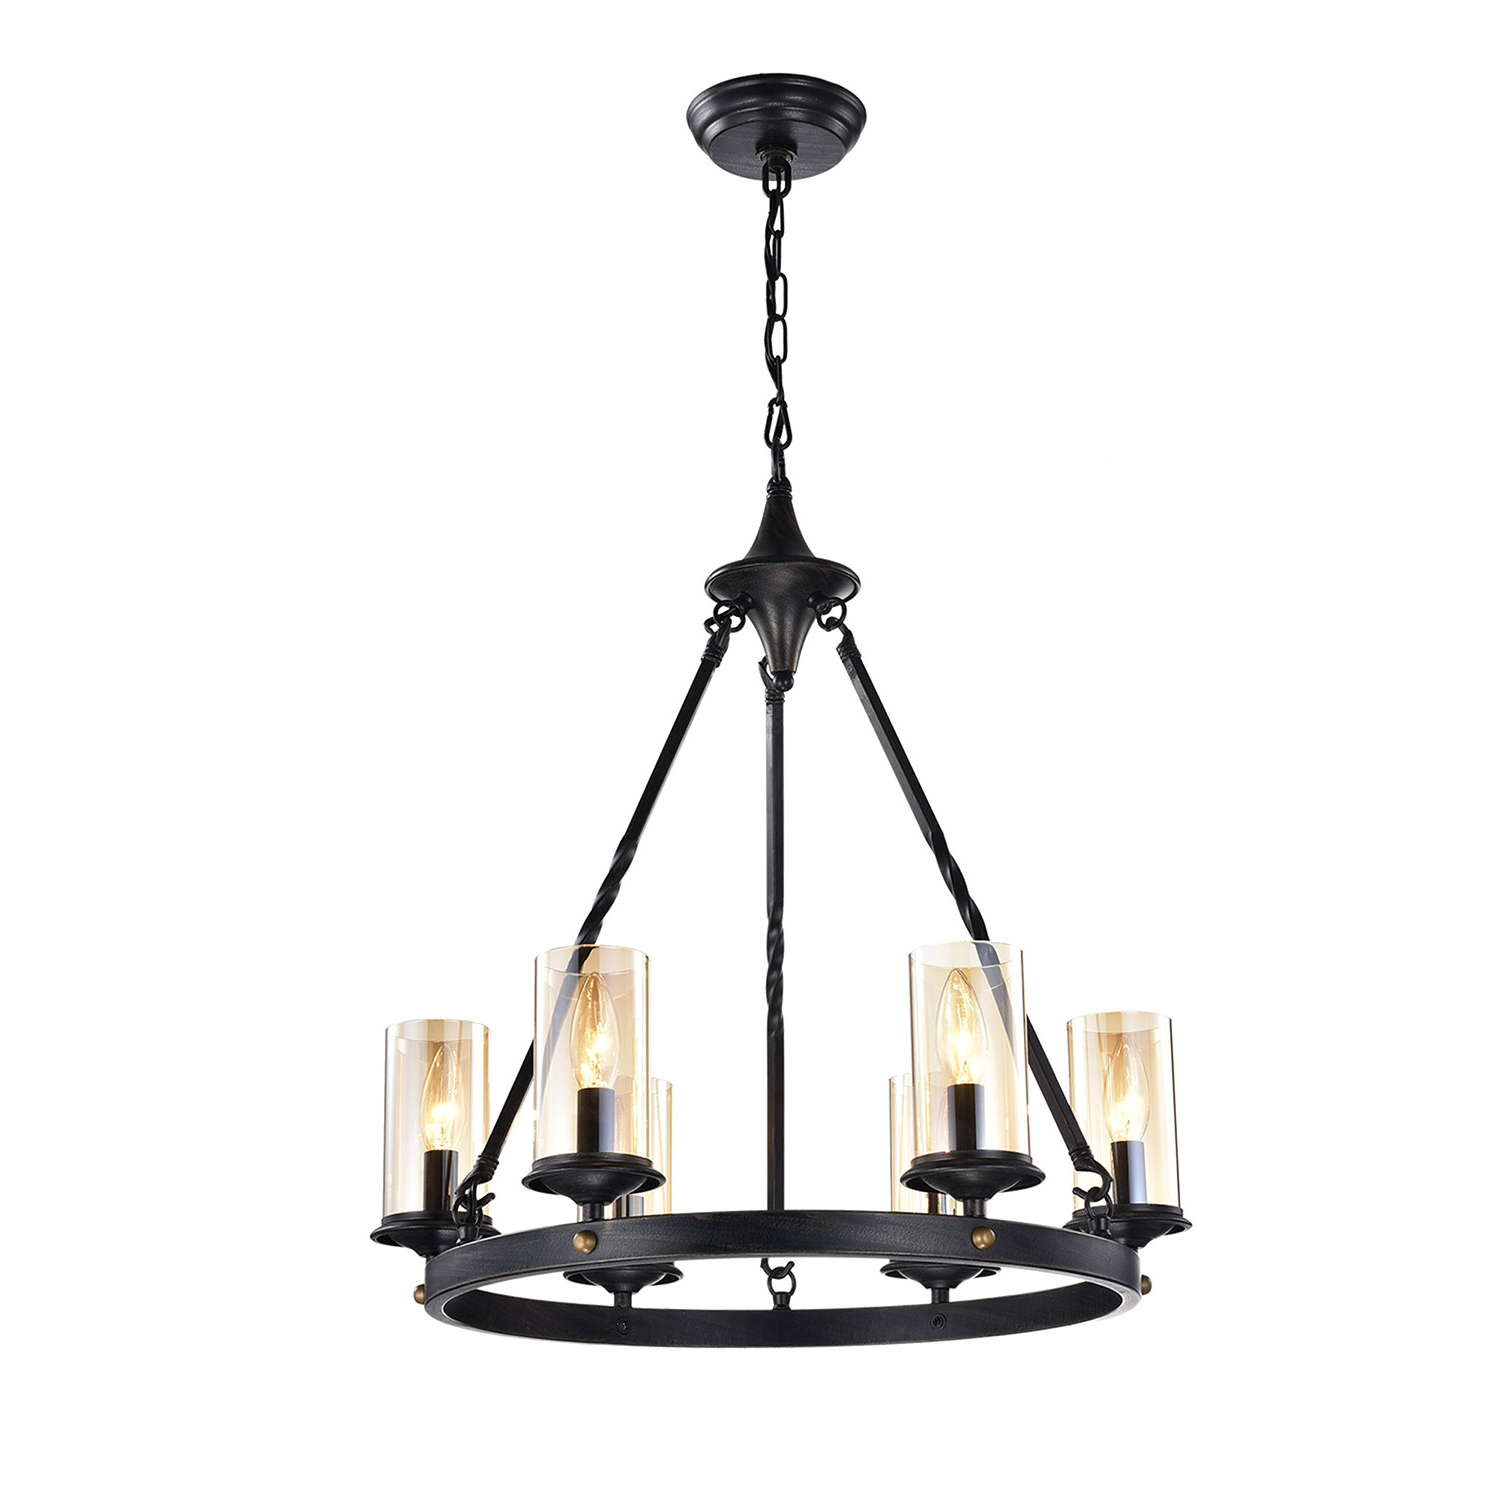 Widely Used Maytown 6 Light Wagon Wheel Chandelier Intended For Pickensville 6 Light Wagon Wheel Chandeliers (Gallery 7 of 20)